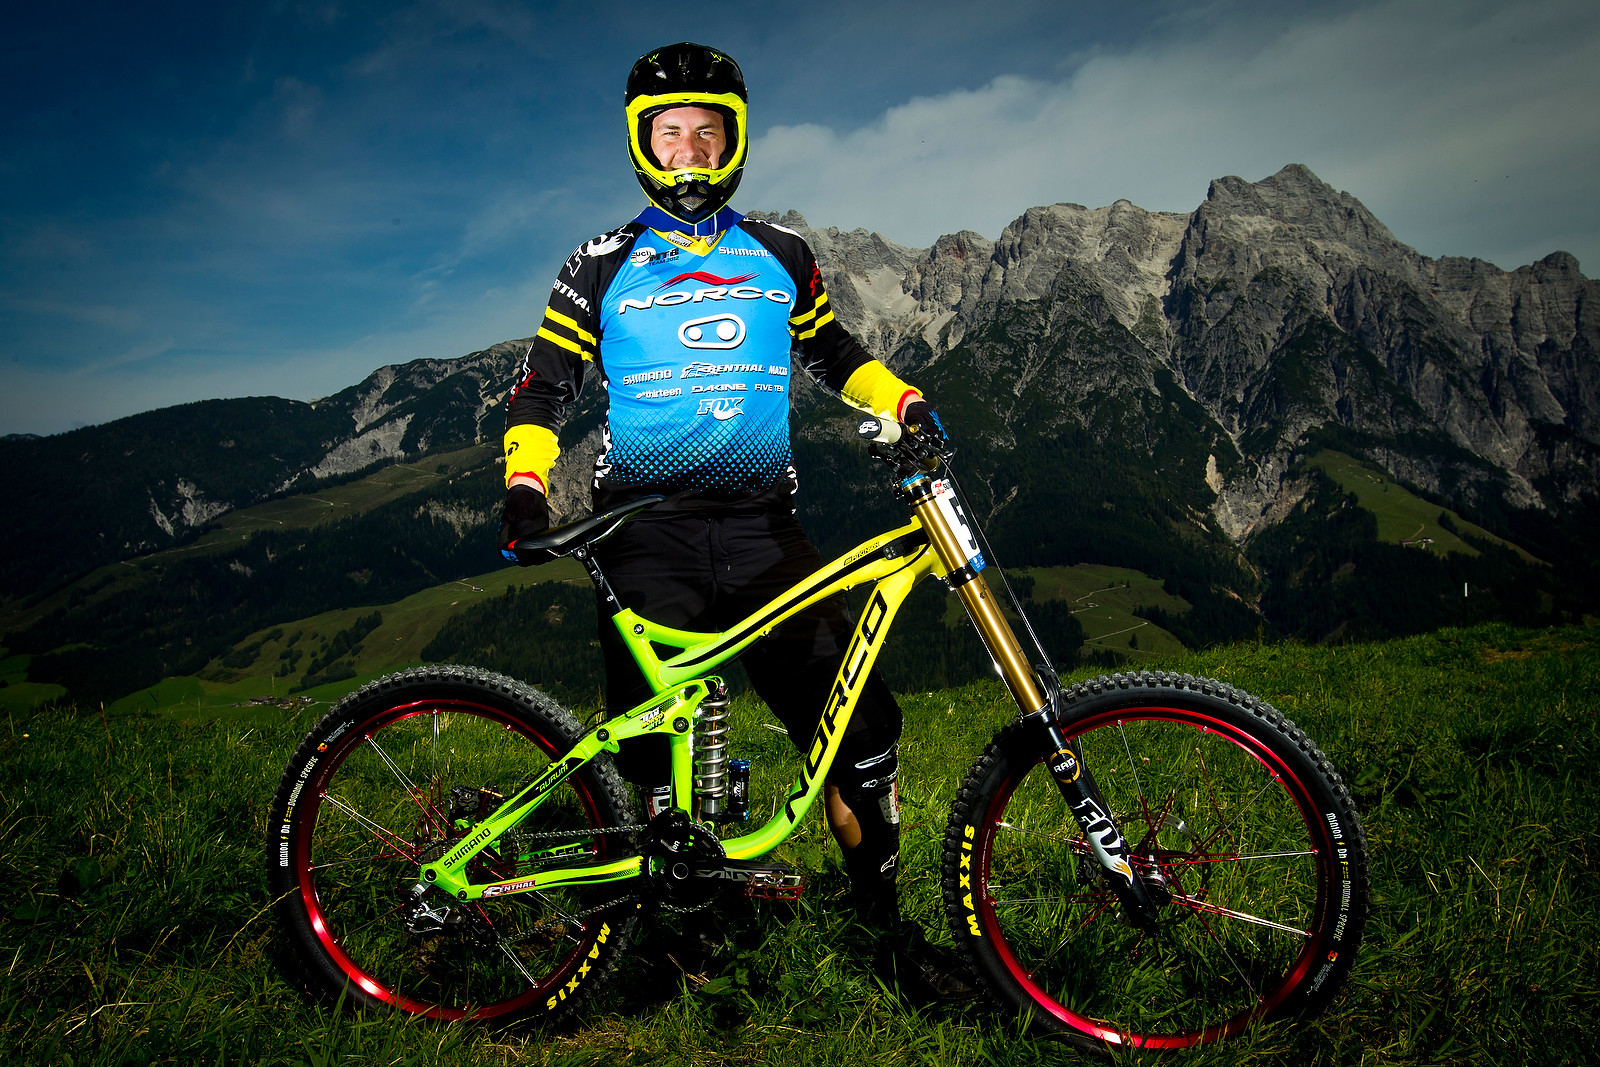 Bryn Atkinson with his Norco Aurum - World Championships Riders and Bikes - Mountain Biking Pictures - Vital MTB